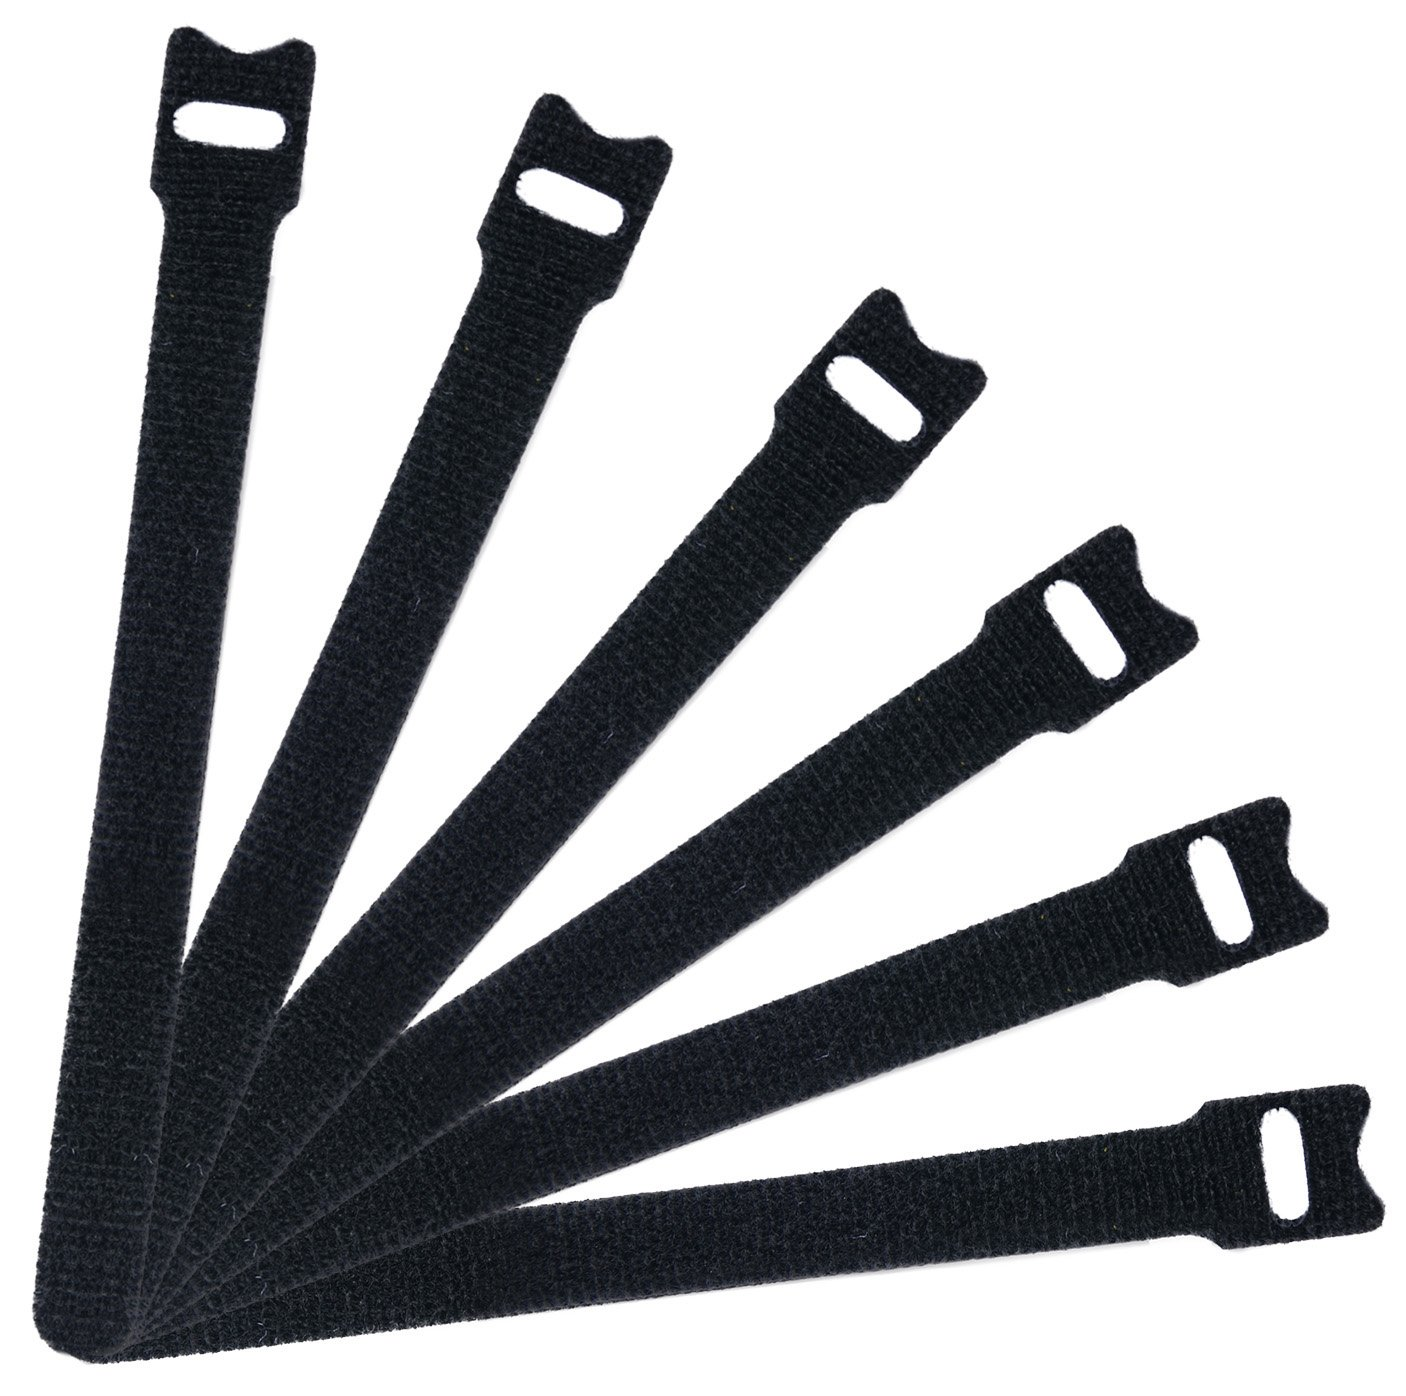 Attmu 50 PCS Reusable Fastening Cable Ties, Microfiber Cloth 6-Inch Hook and Loop Cord Ties, Black BBB-025